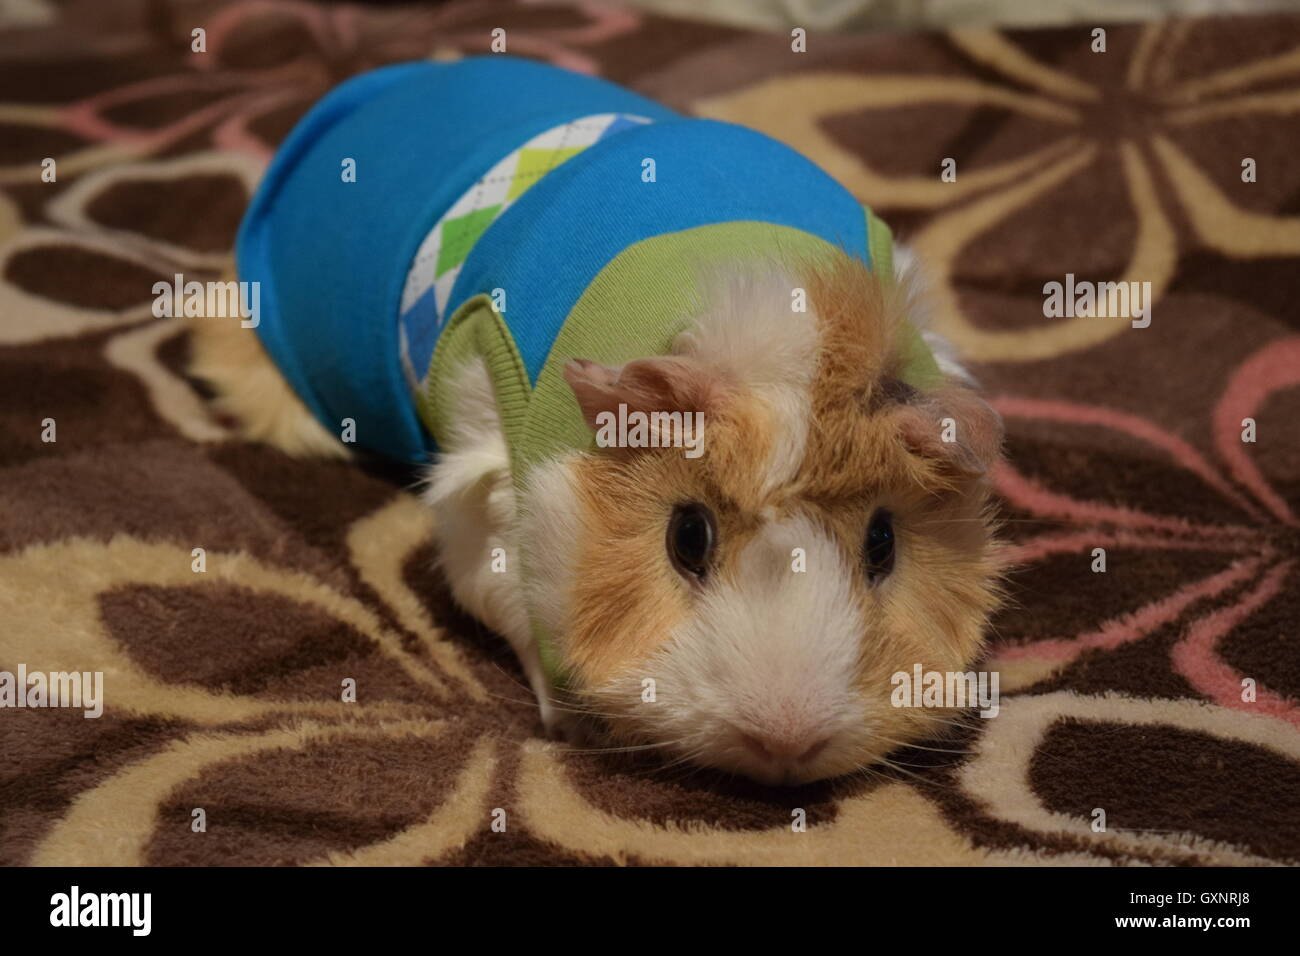 Izzy the Guinea Pig - Stock Image